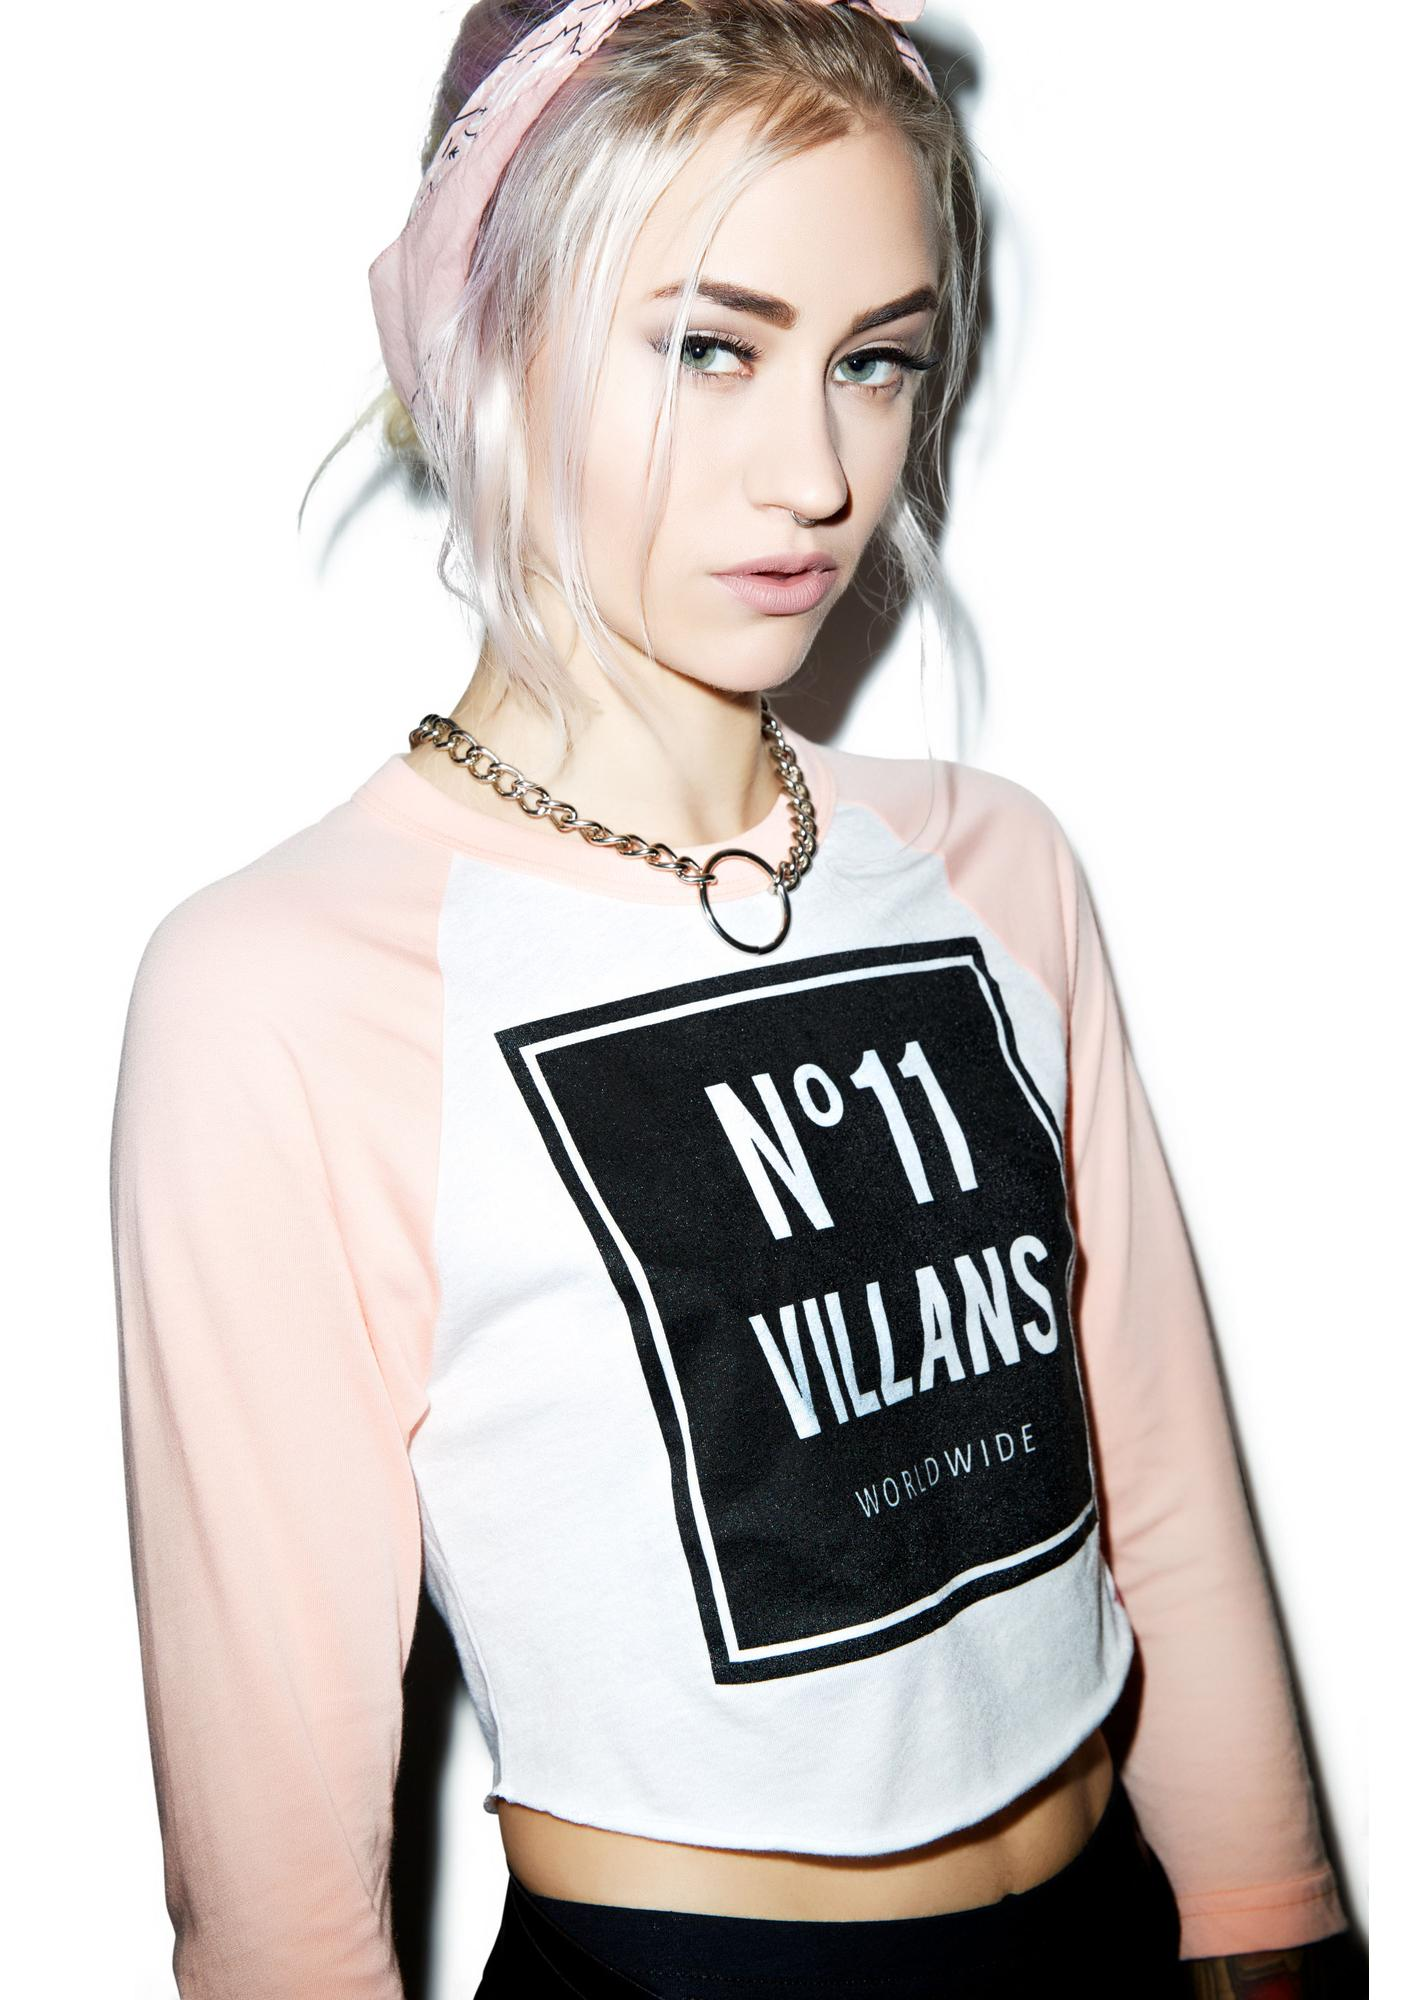 Villans Worldwide 11 Raglan